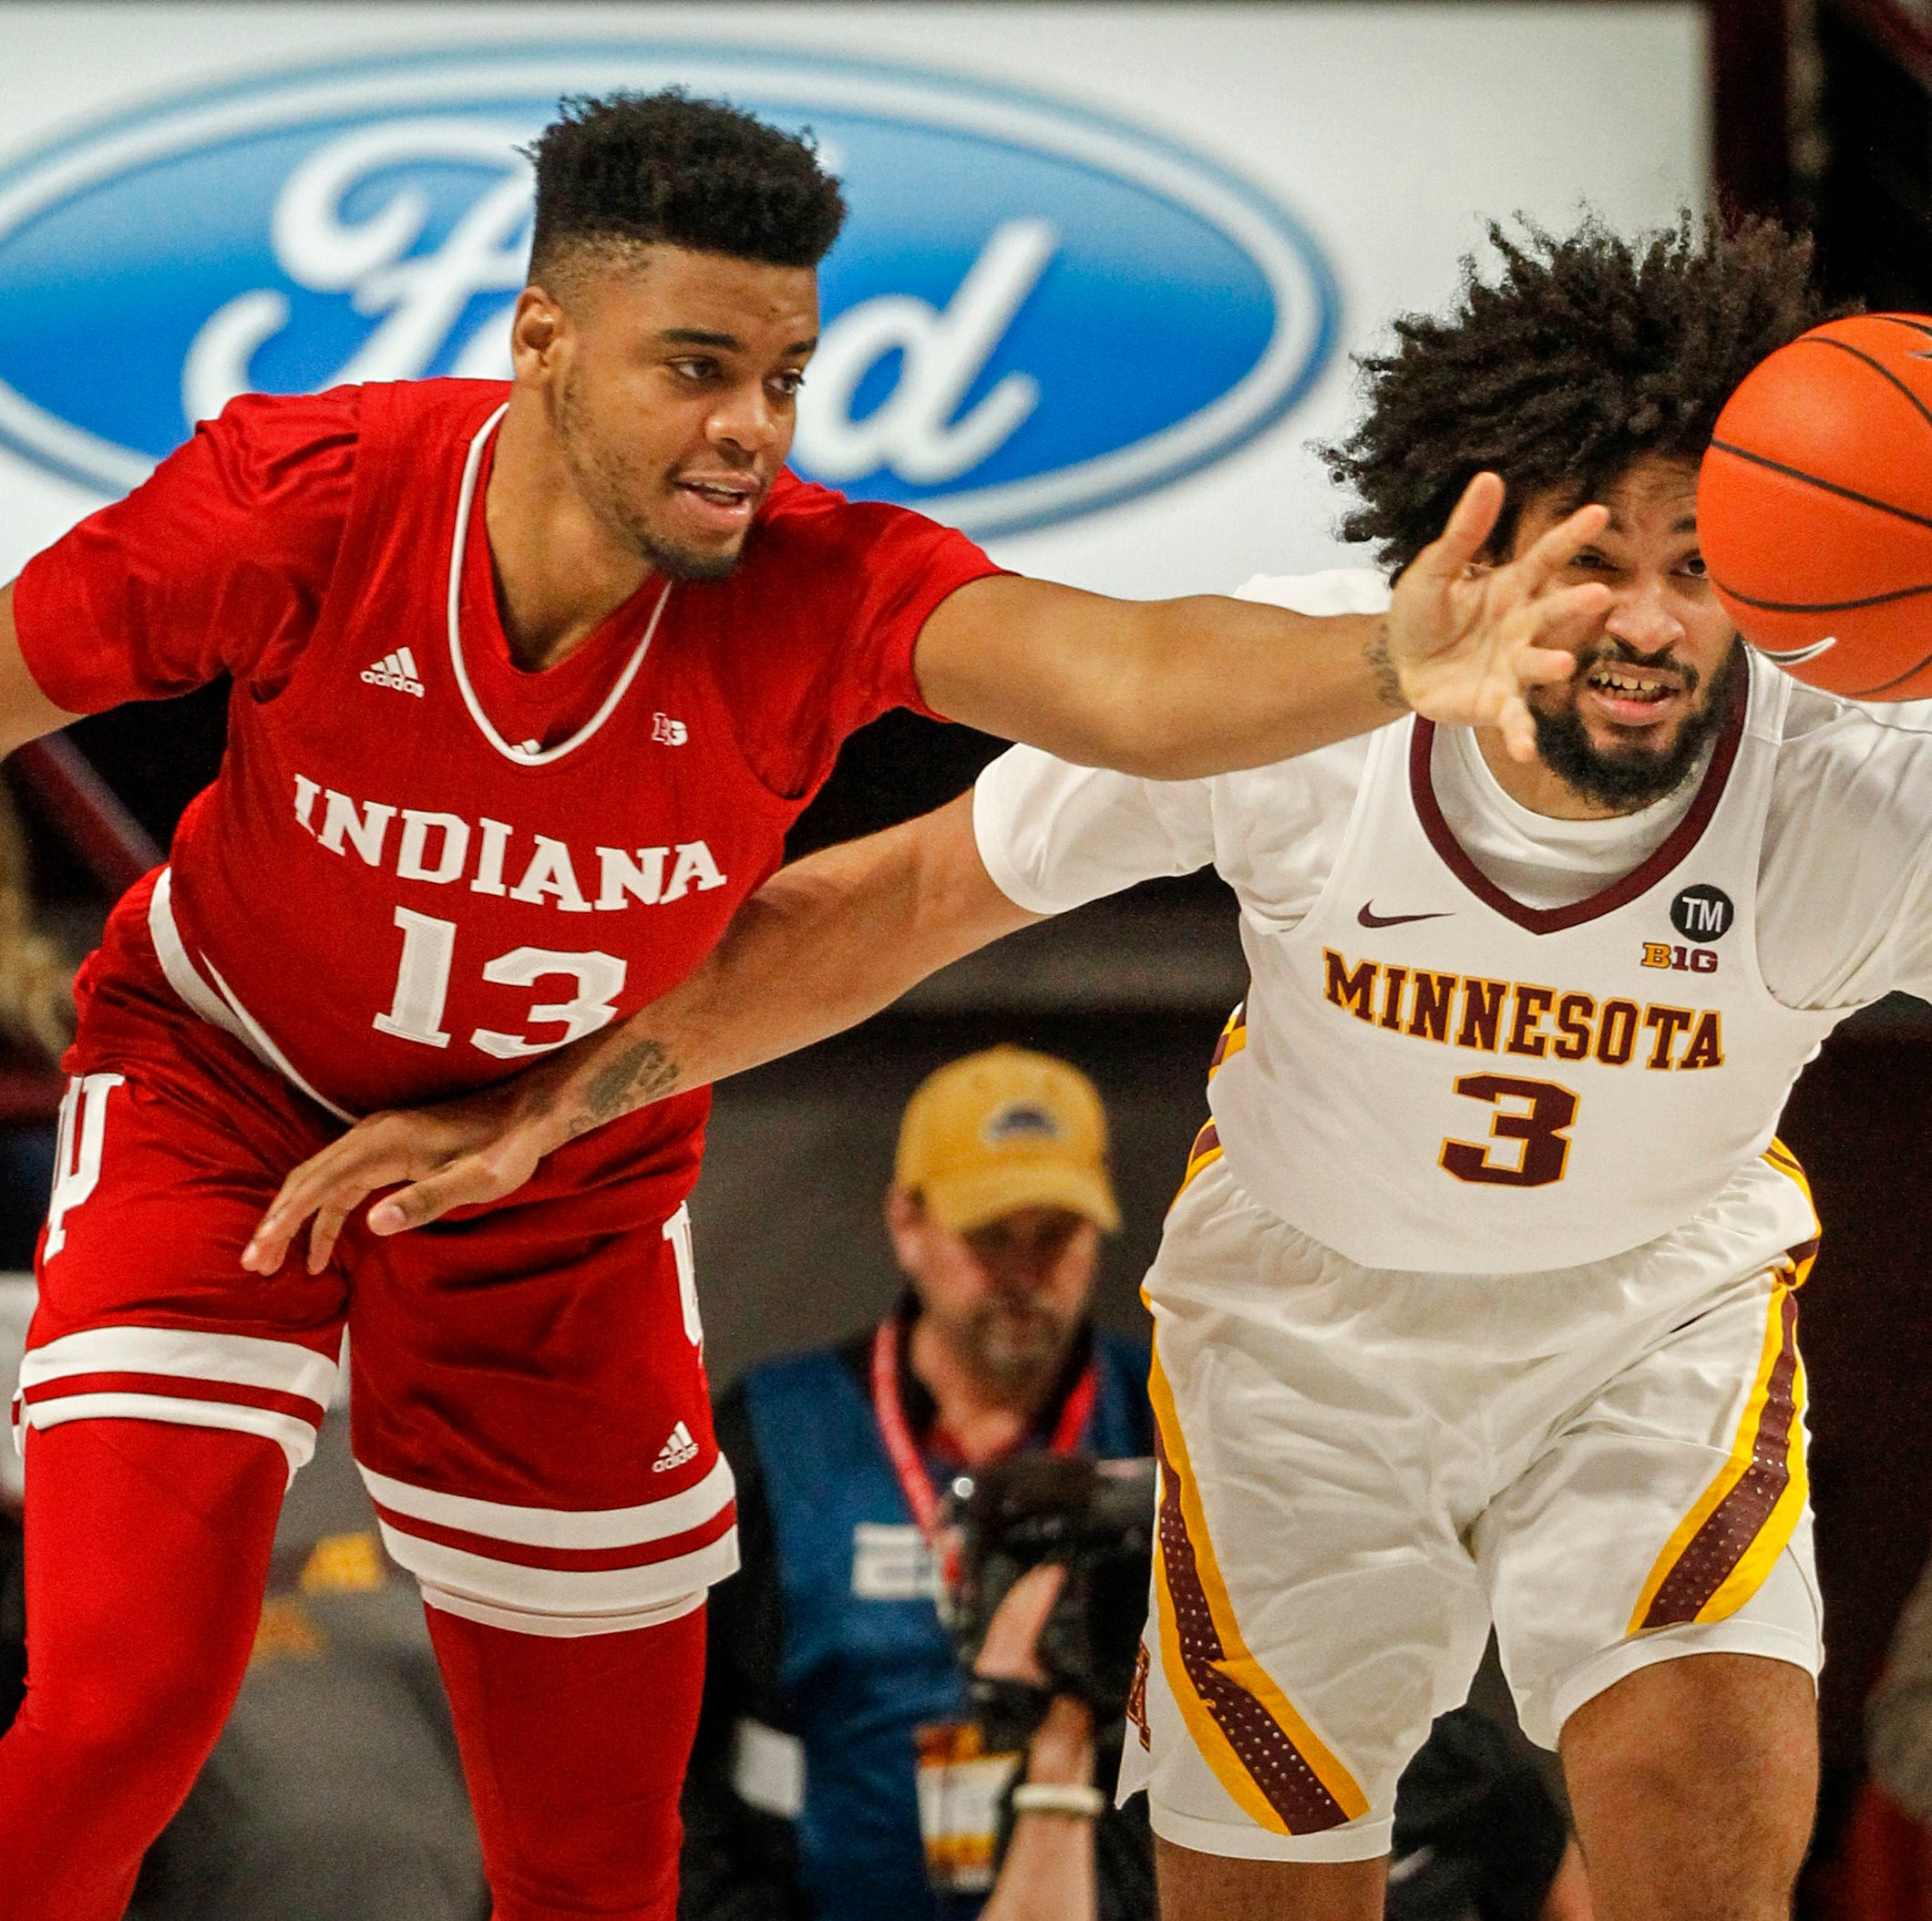 Buzzer breakdown: Dismal IU basketball season hits new low in Minnesota